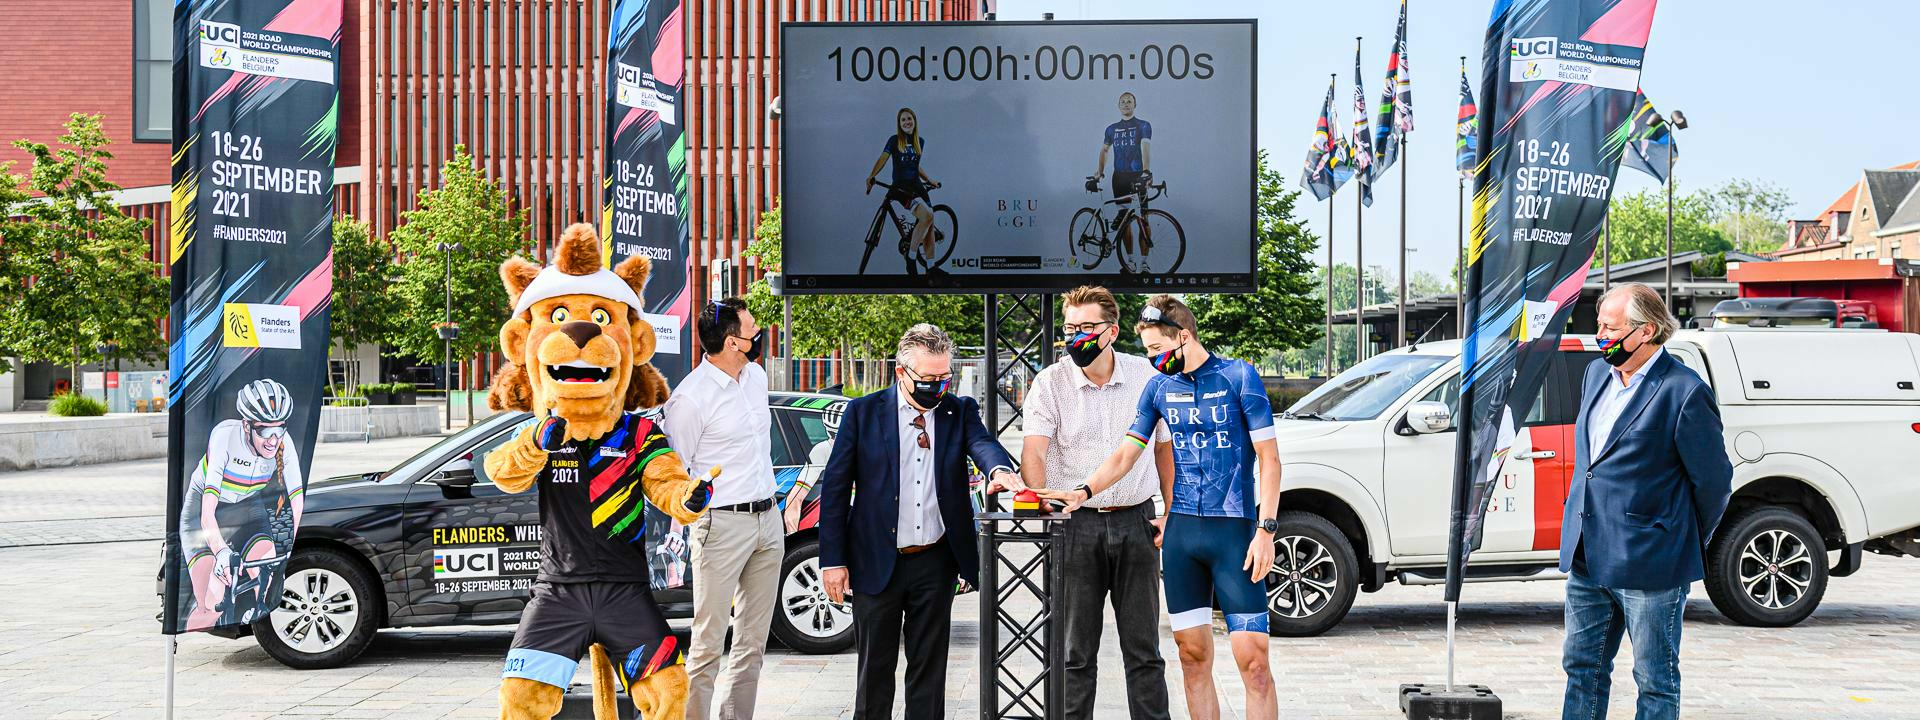 100 days to the World Championships: the countdown has begun